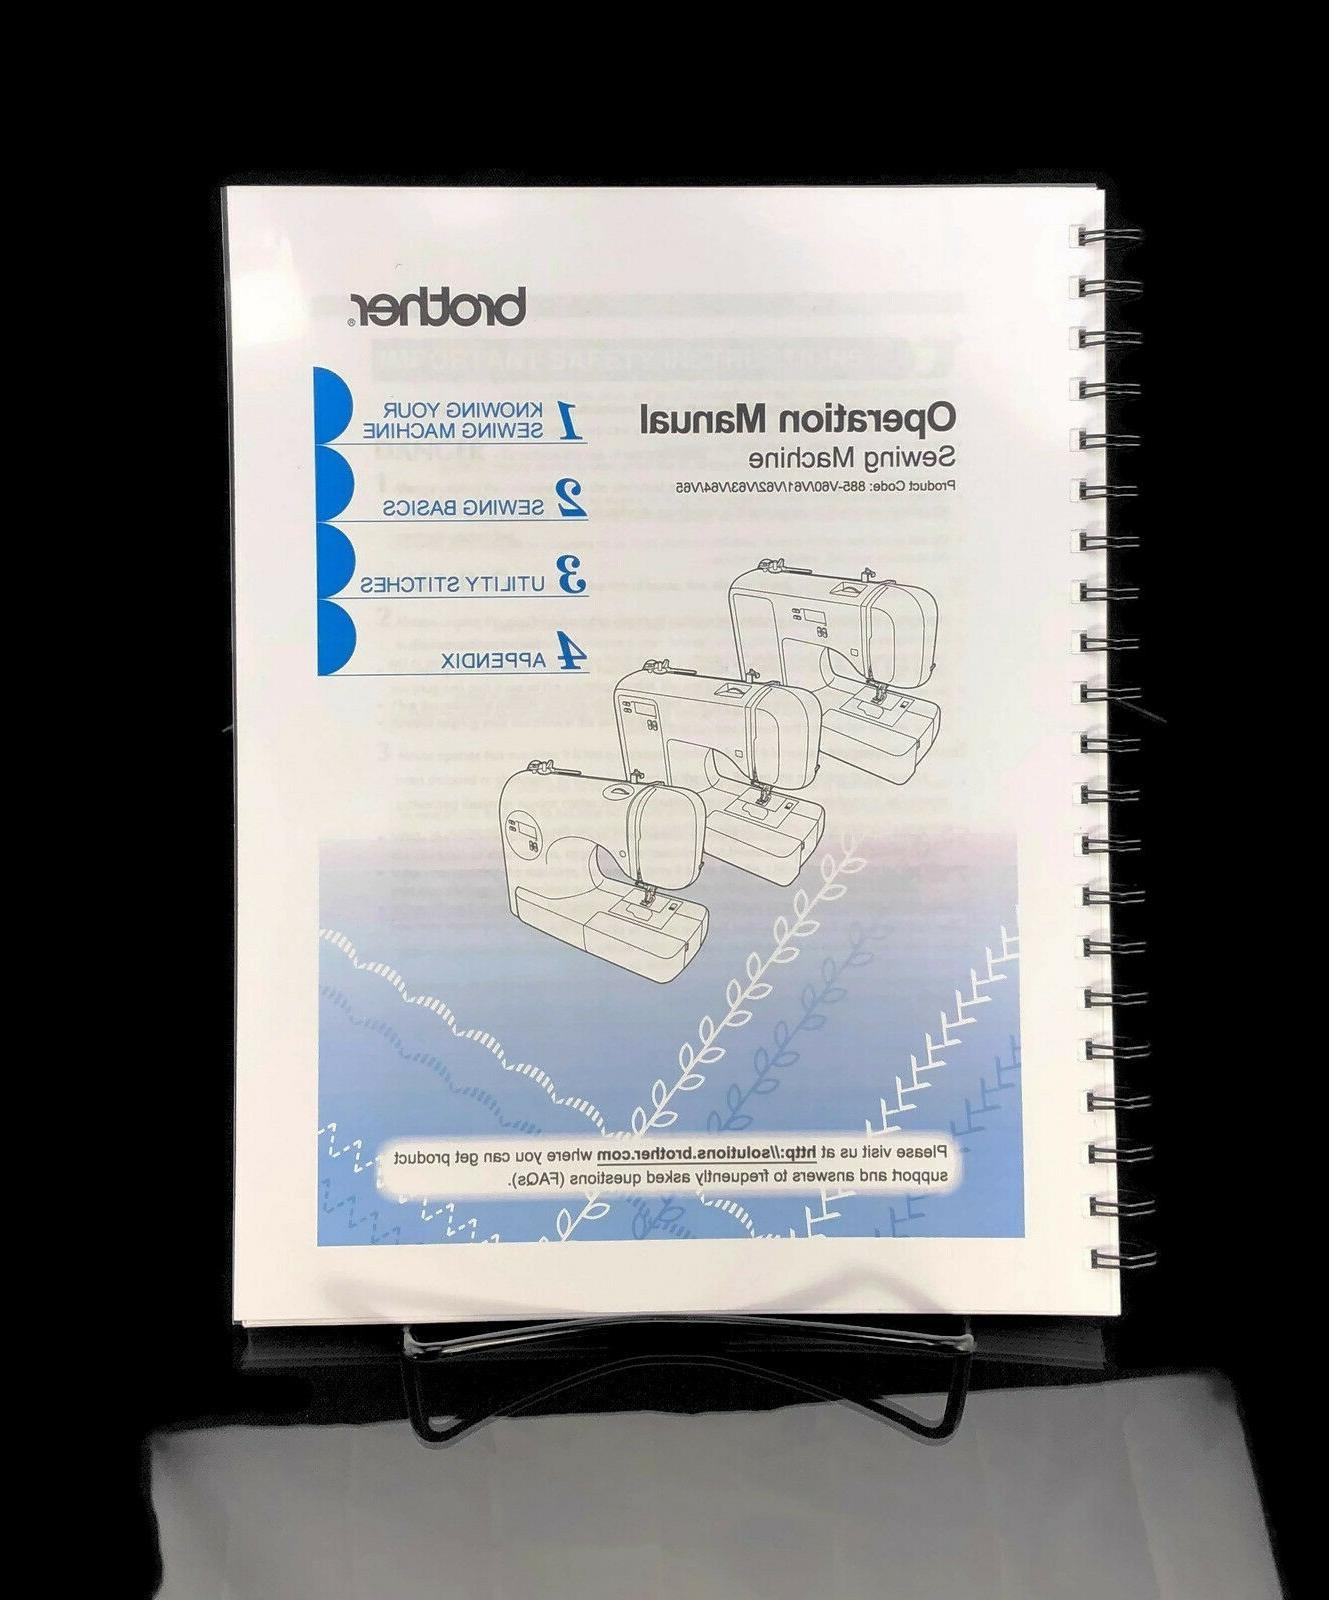 sewing machine operation manual user guide instructions